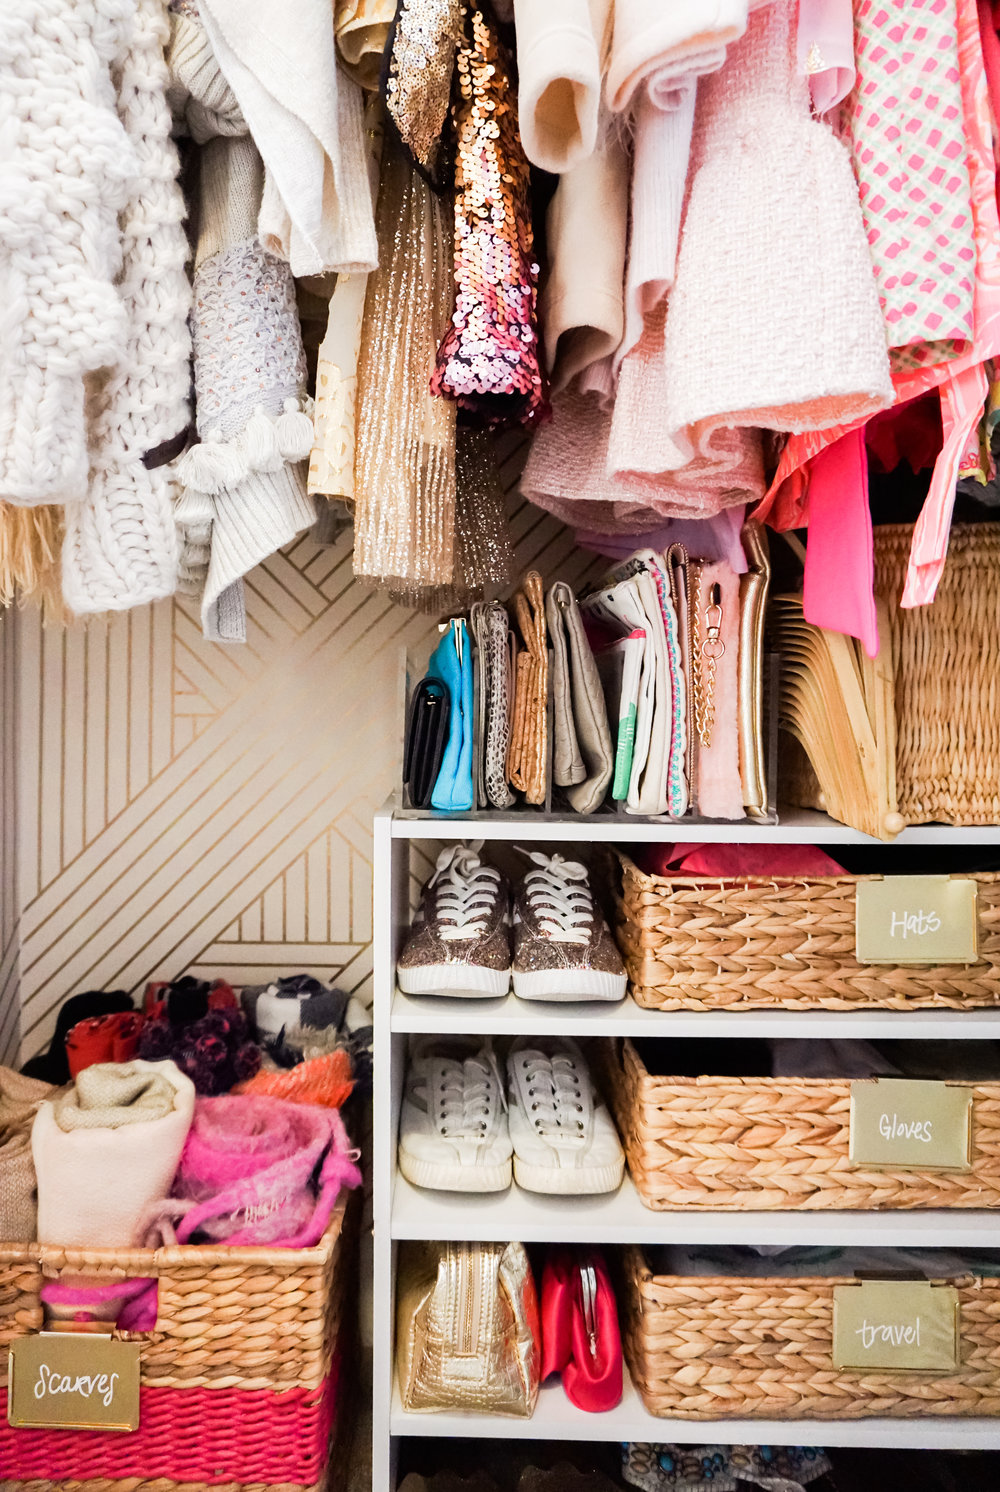 House of Turk | Closet Organization, Stacking Shelves with Baskets